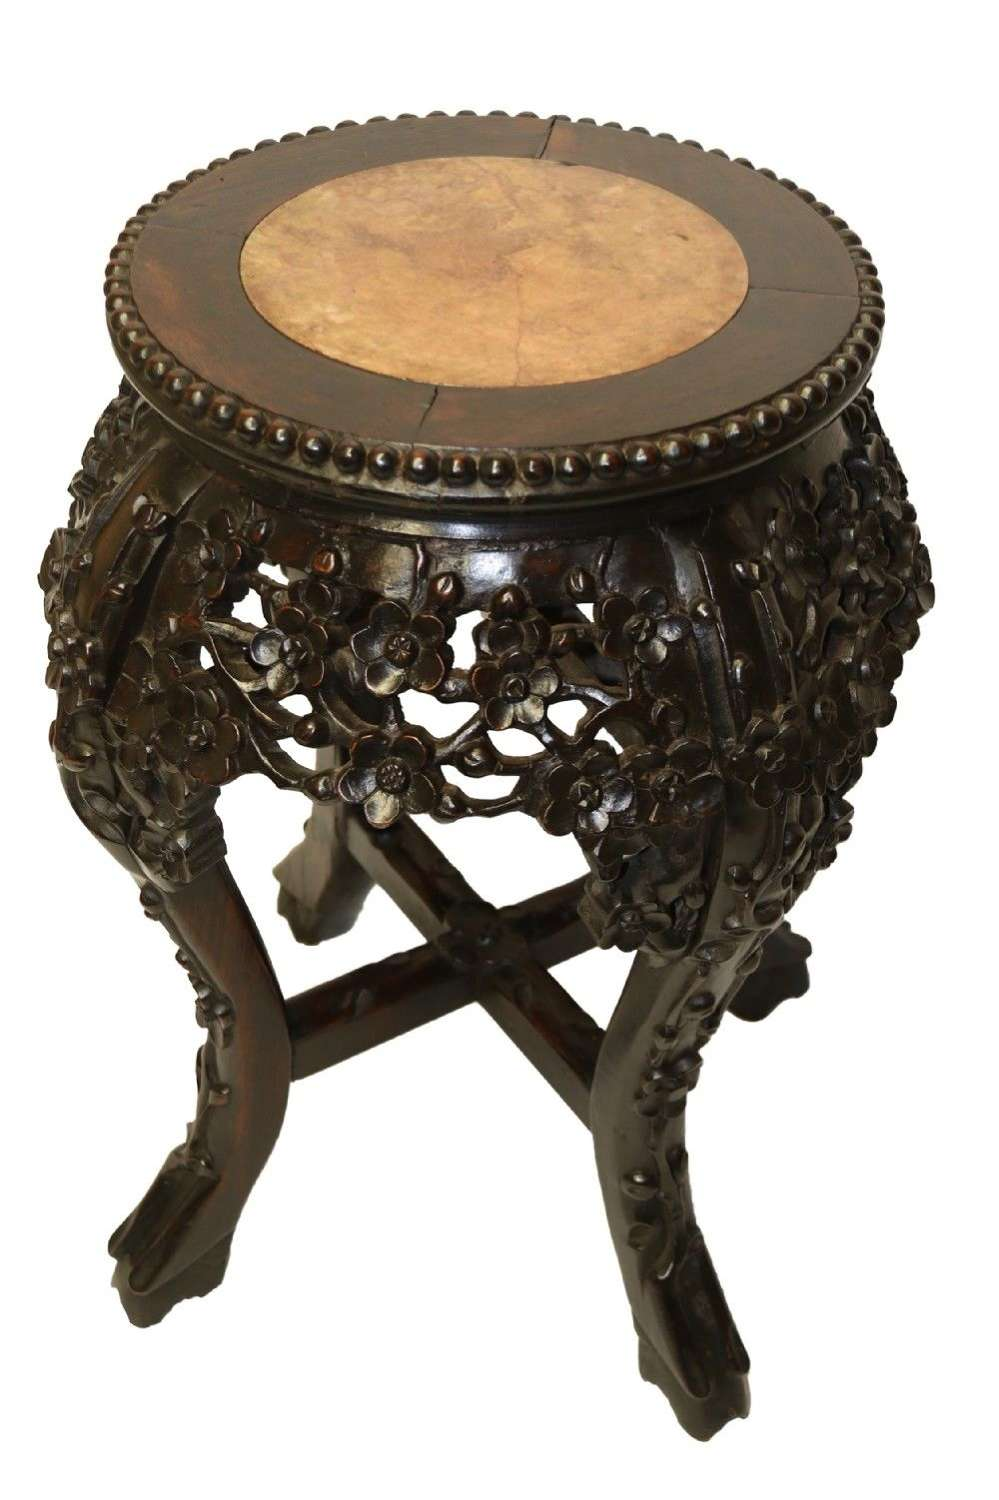 A Chinese Late 19th Century Carved Hardwood Circular Table Or Stand